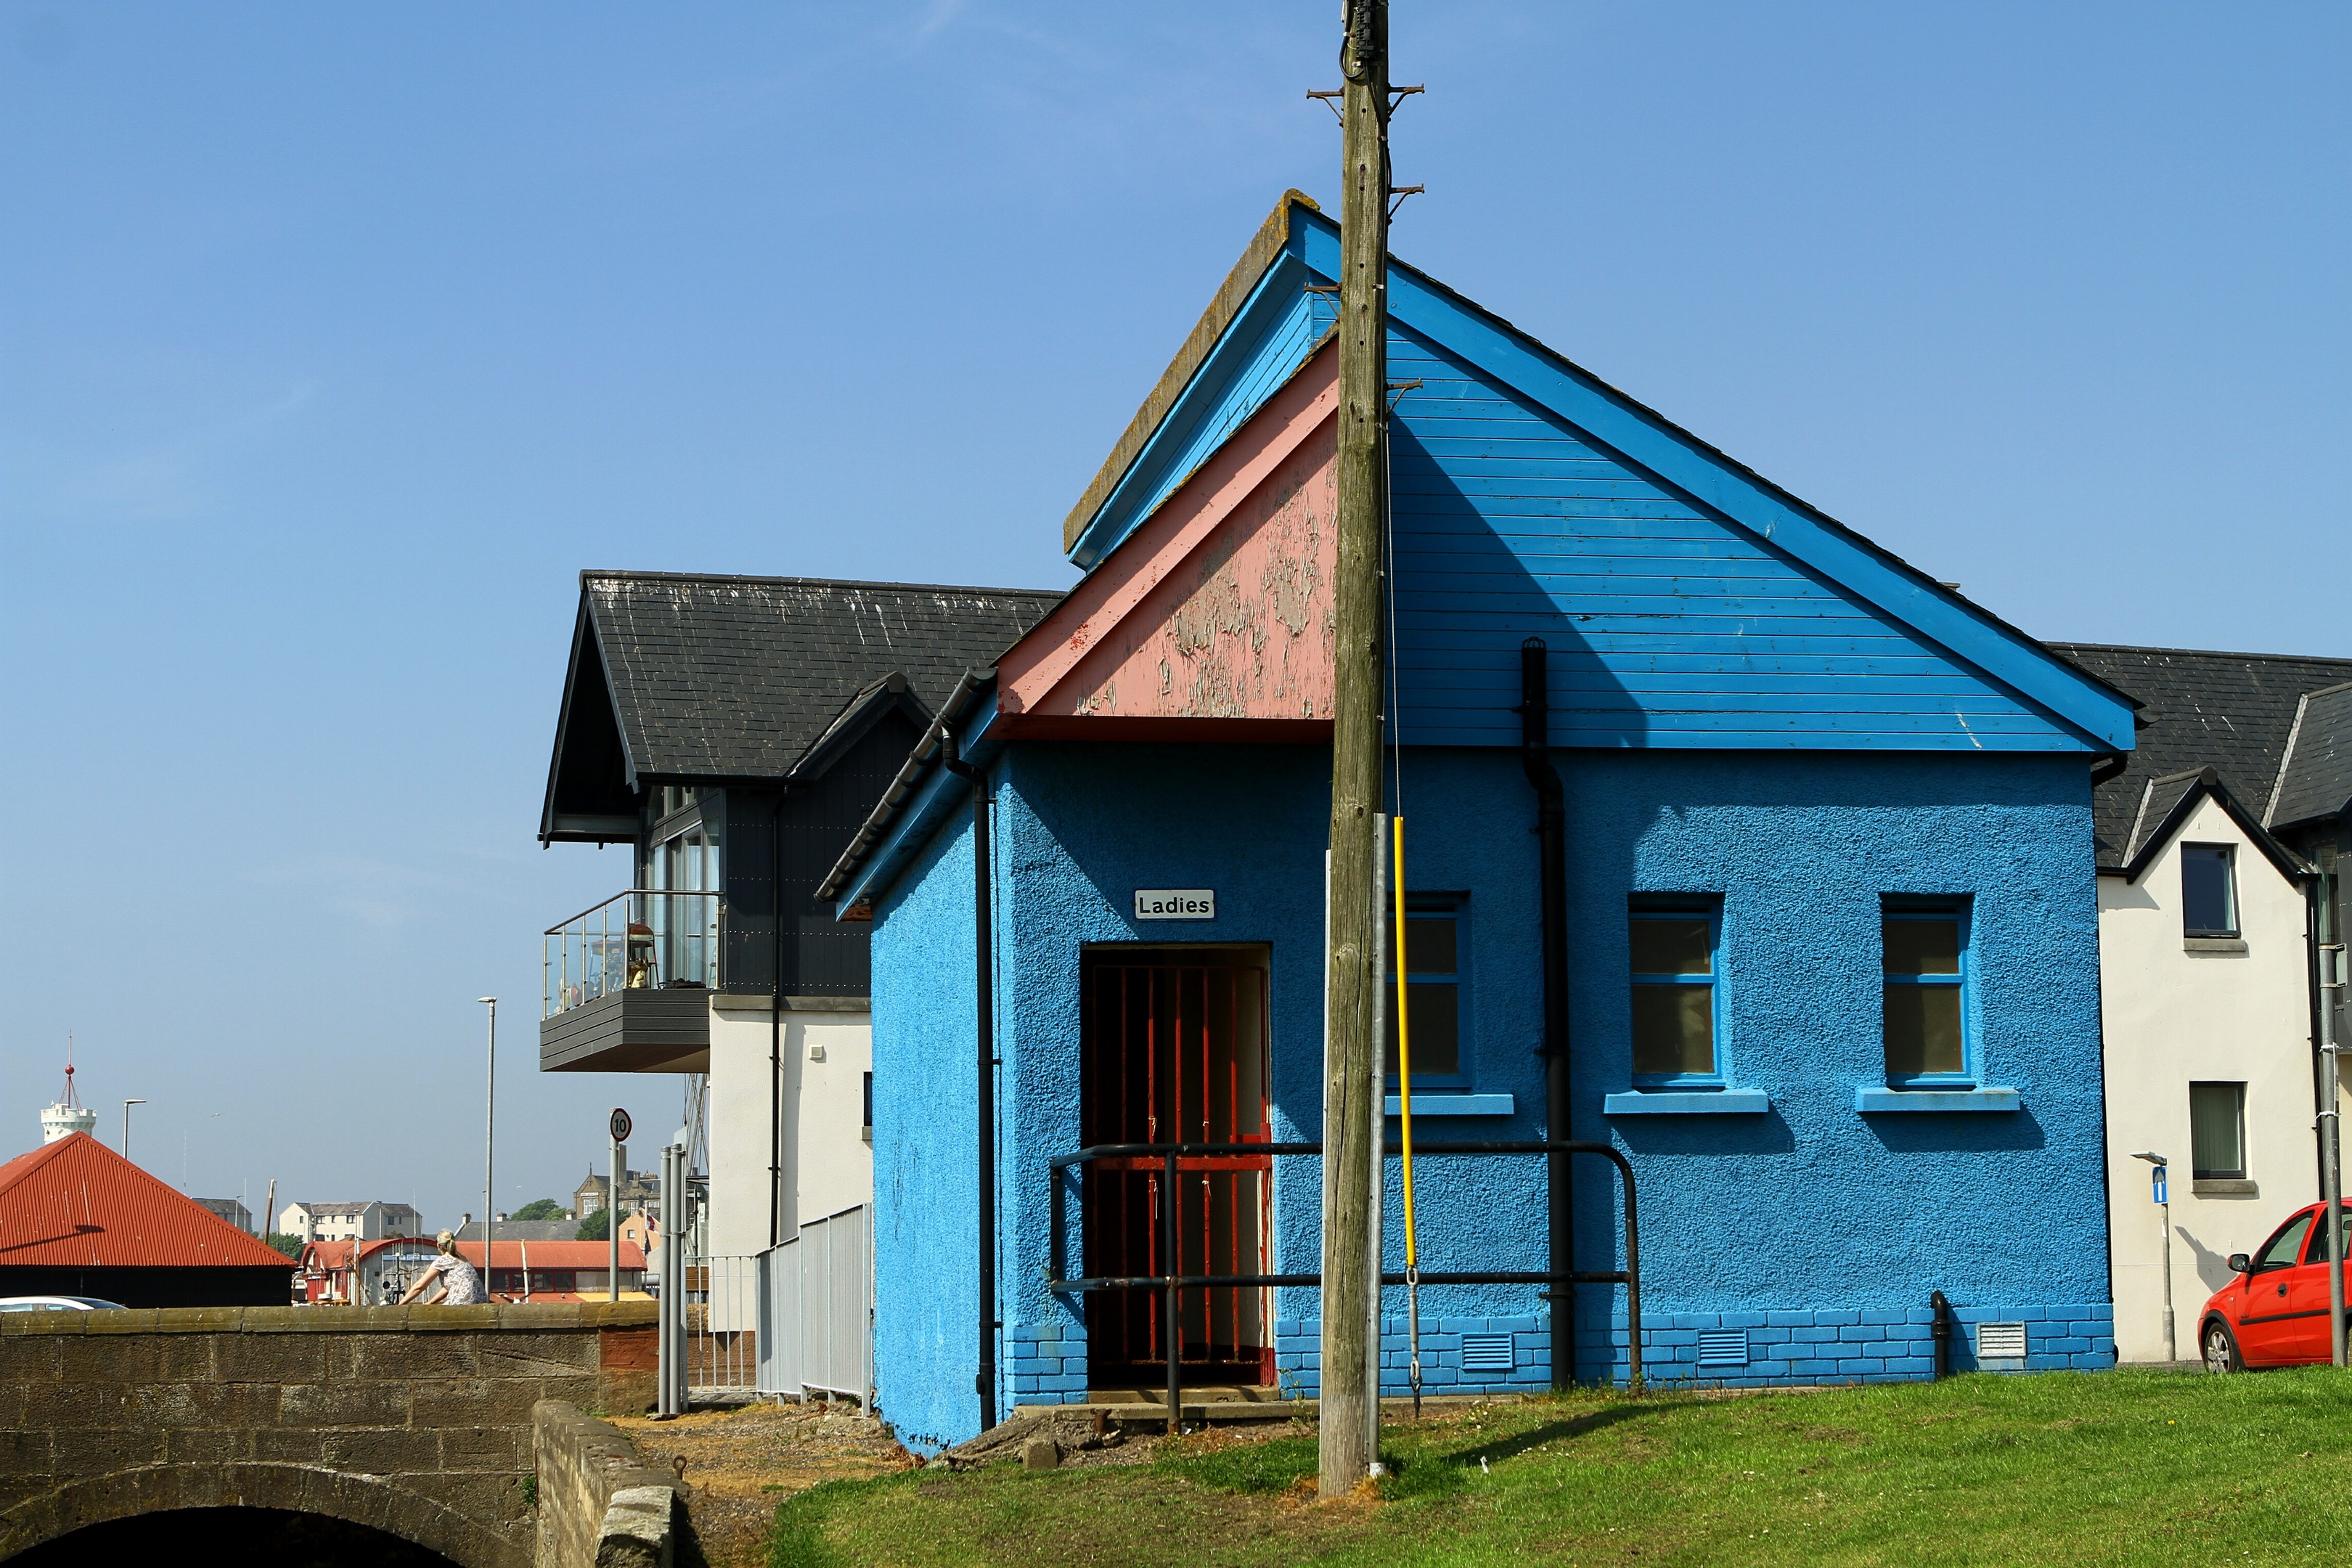 The controversial blue loo